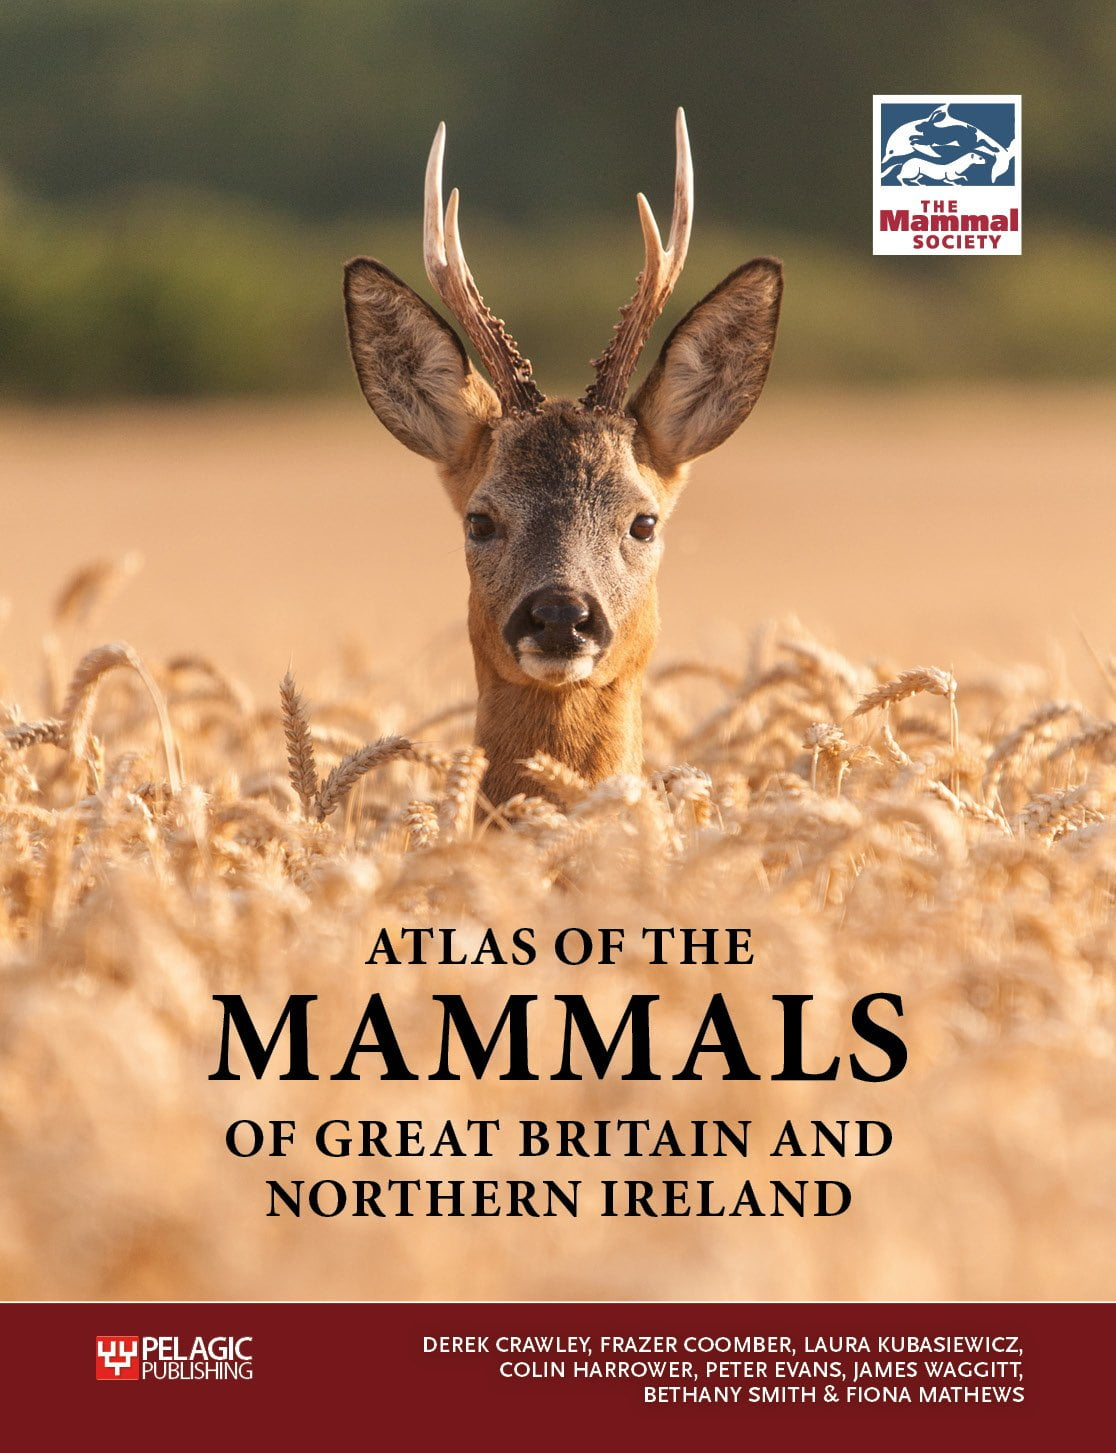 Book Review: Atlas of the Mammals of Great Britain and Northern Ireland